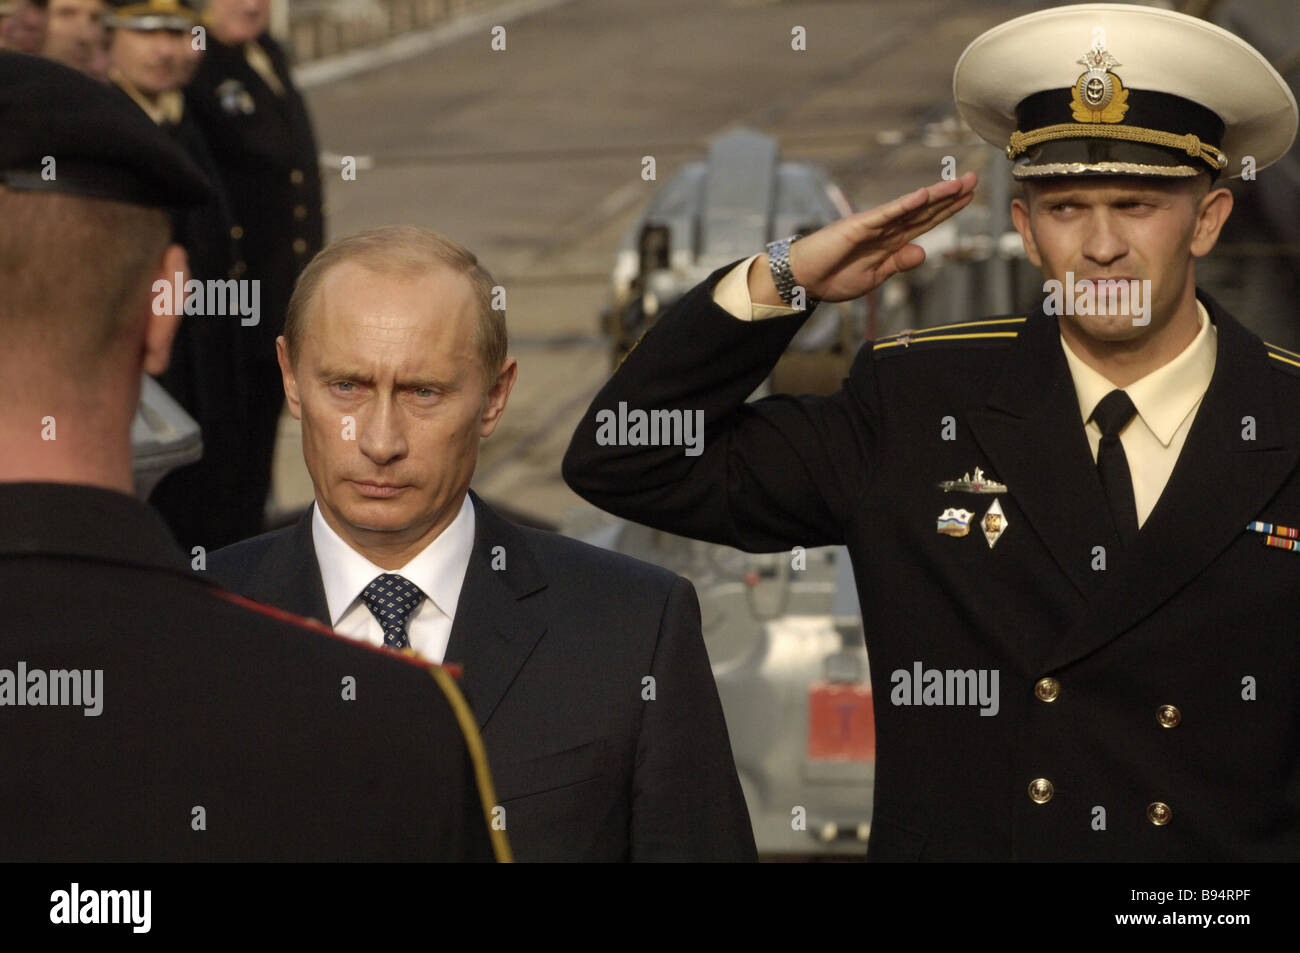 Russian President Vladimir Putin aboard the Nastoichivy destroyer the flagship of the Baltic Fleet - Stock Image